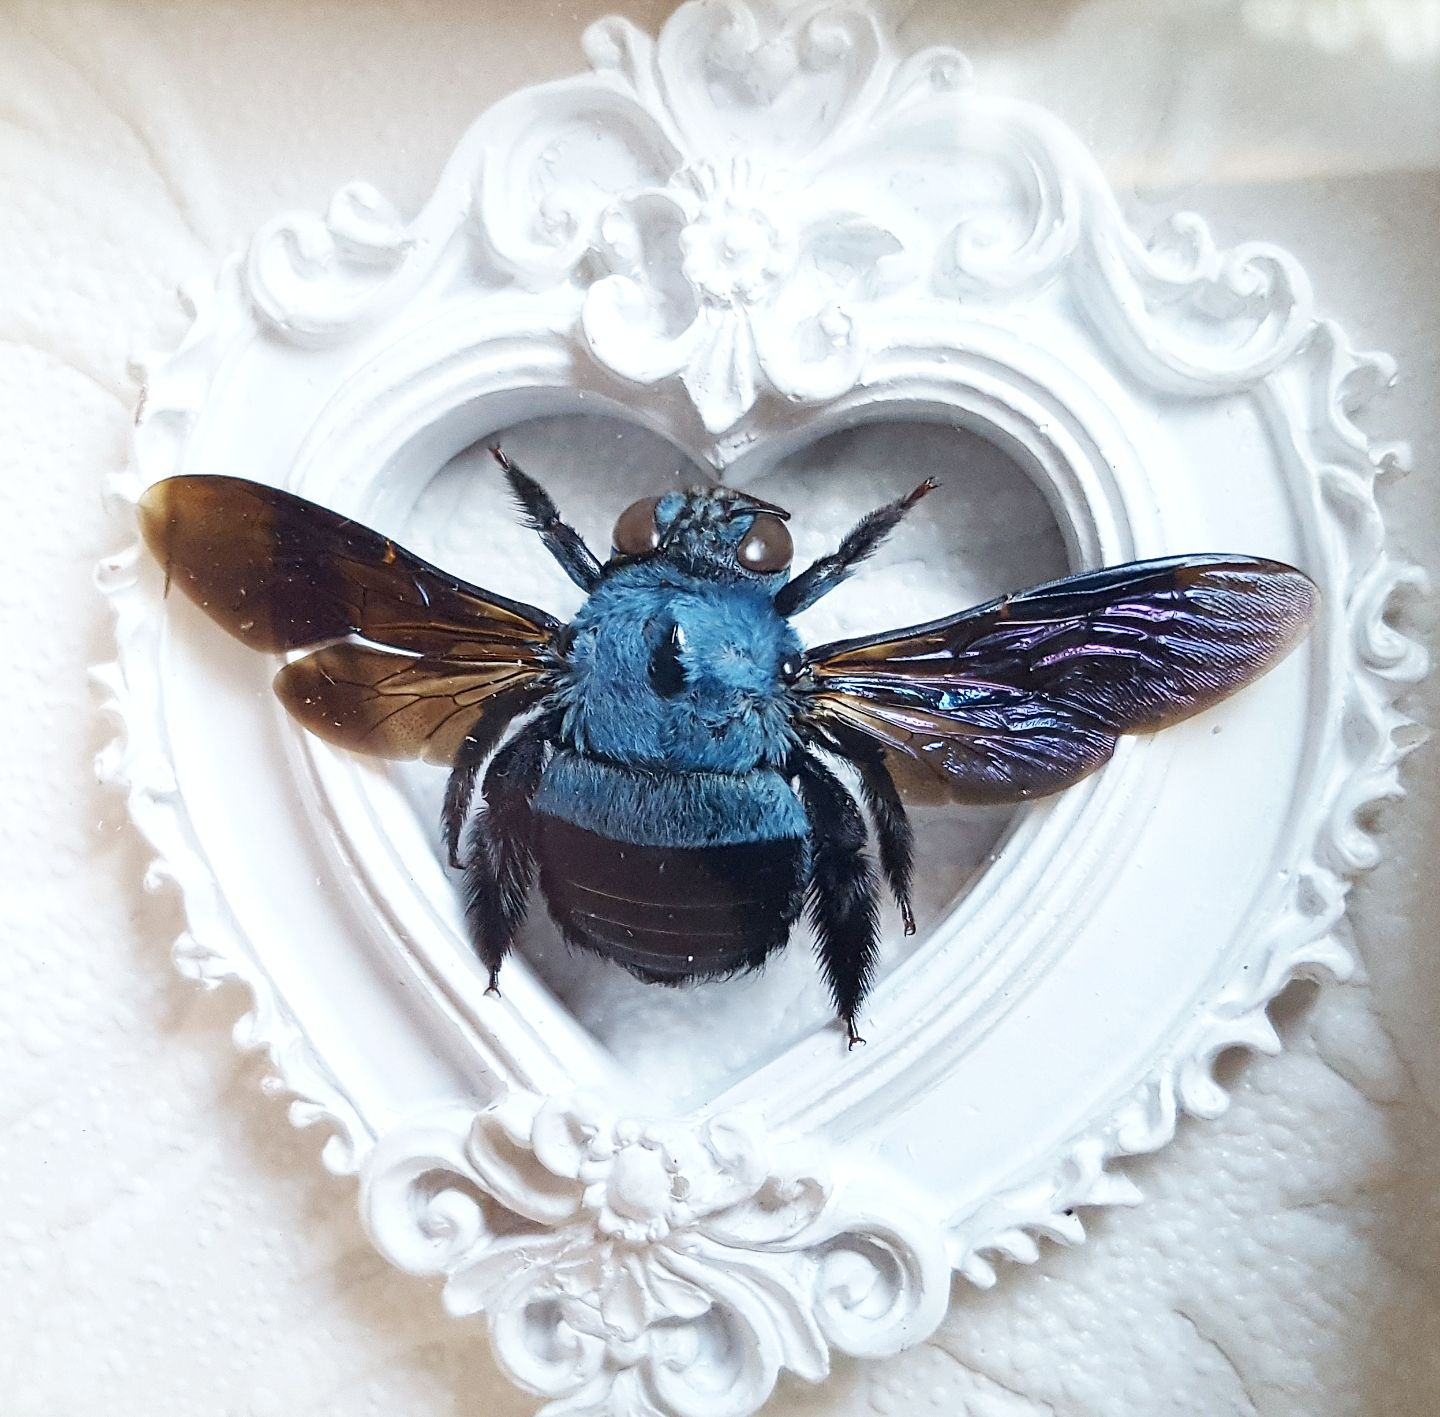 Blue Carpenter Bee Xylocopa caerulea Female Spread Real Insect Taxidermy